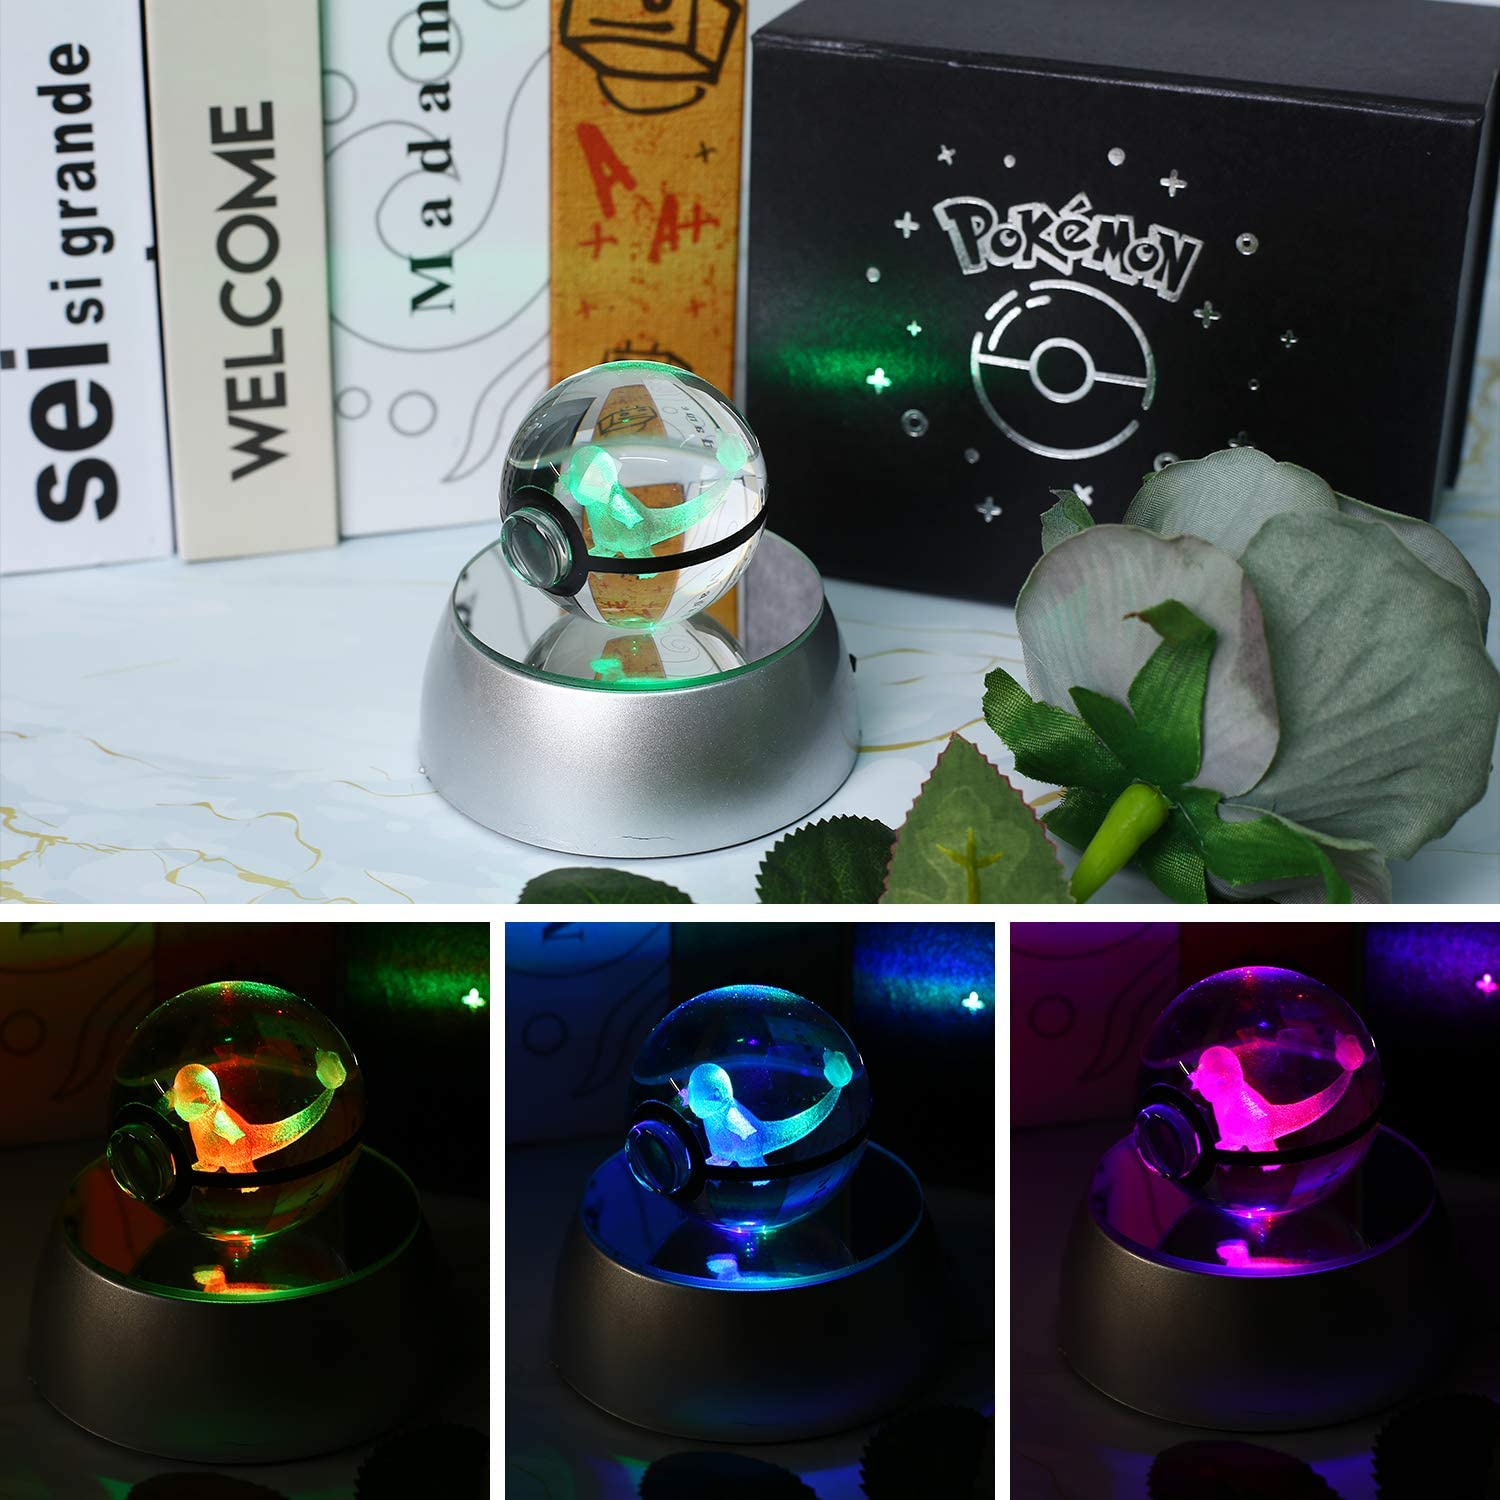 3D Crystal Ball Pokemon Series Laser Etching Crystal Ball LED Night Lights 50mm Ball Automatic Discoloration Base for Childrens Gift Pikachu